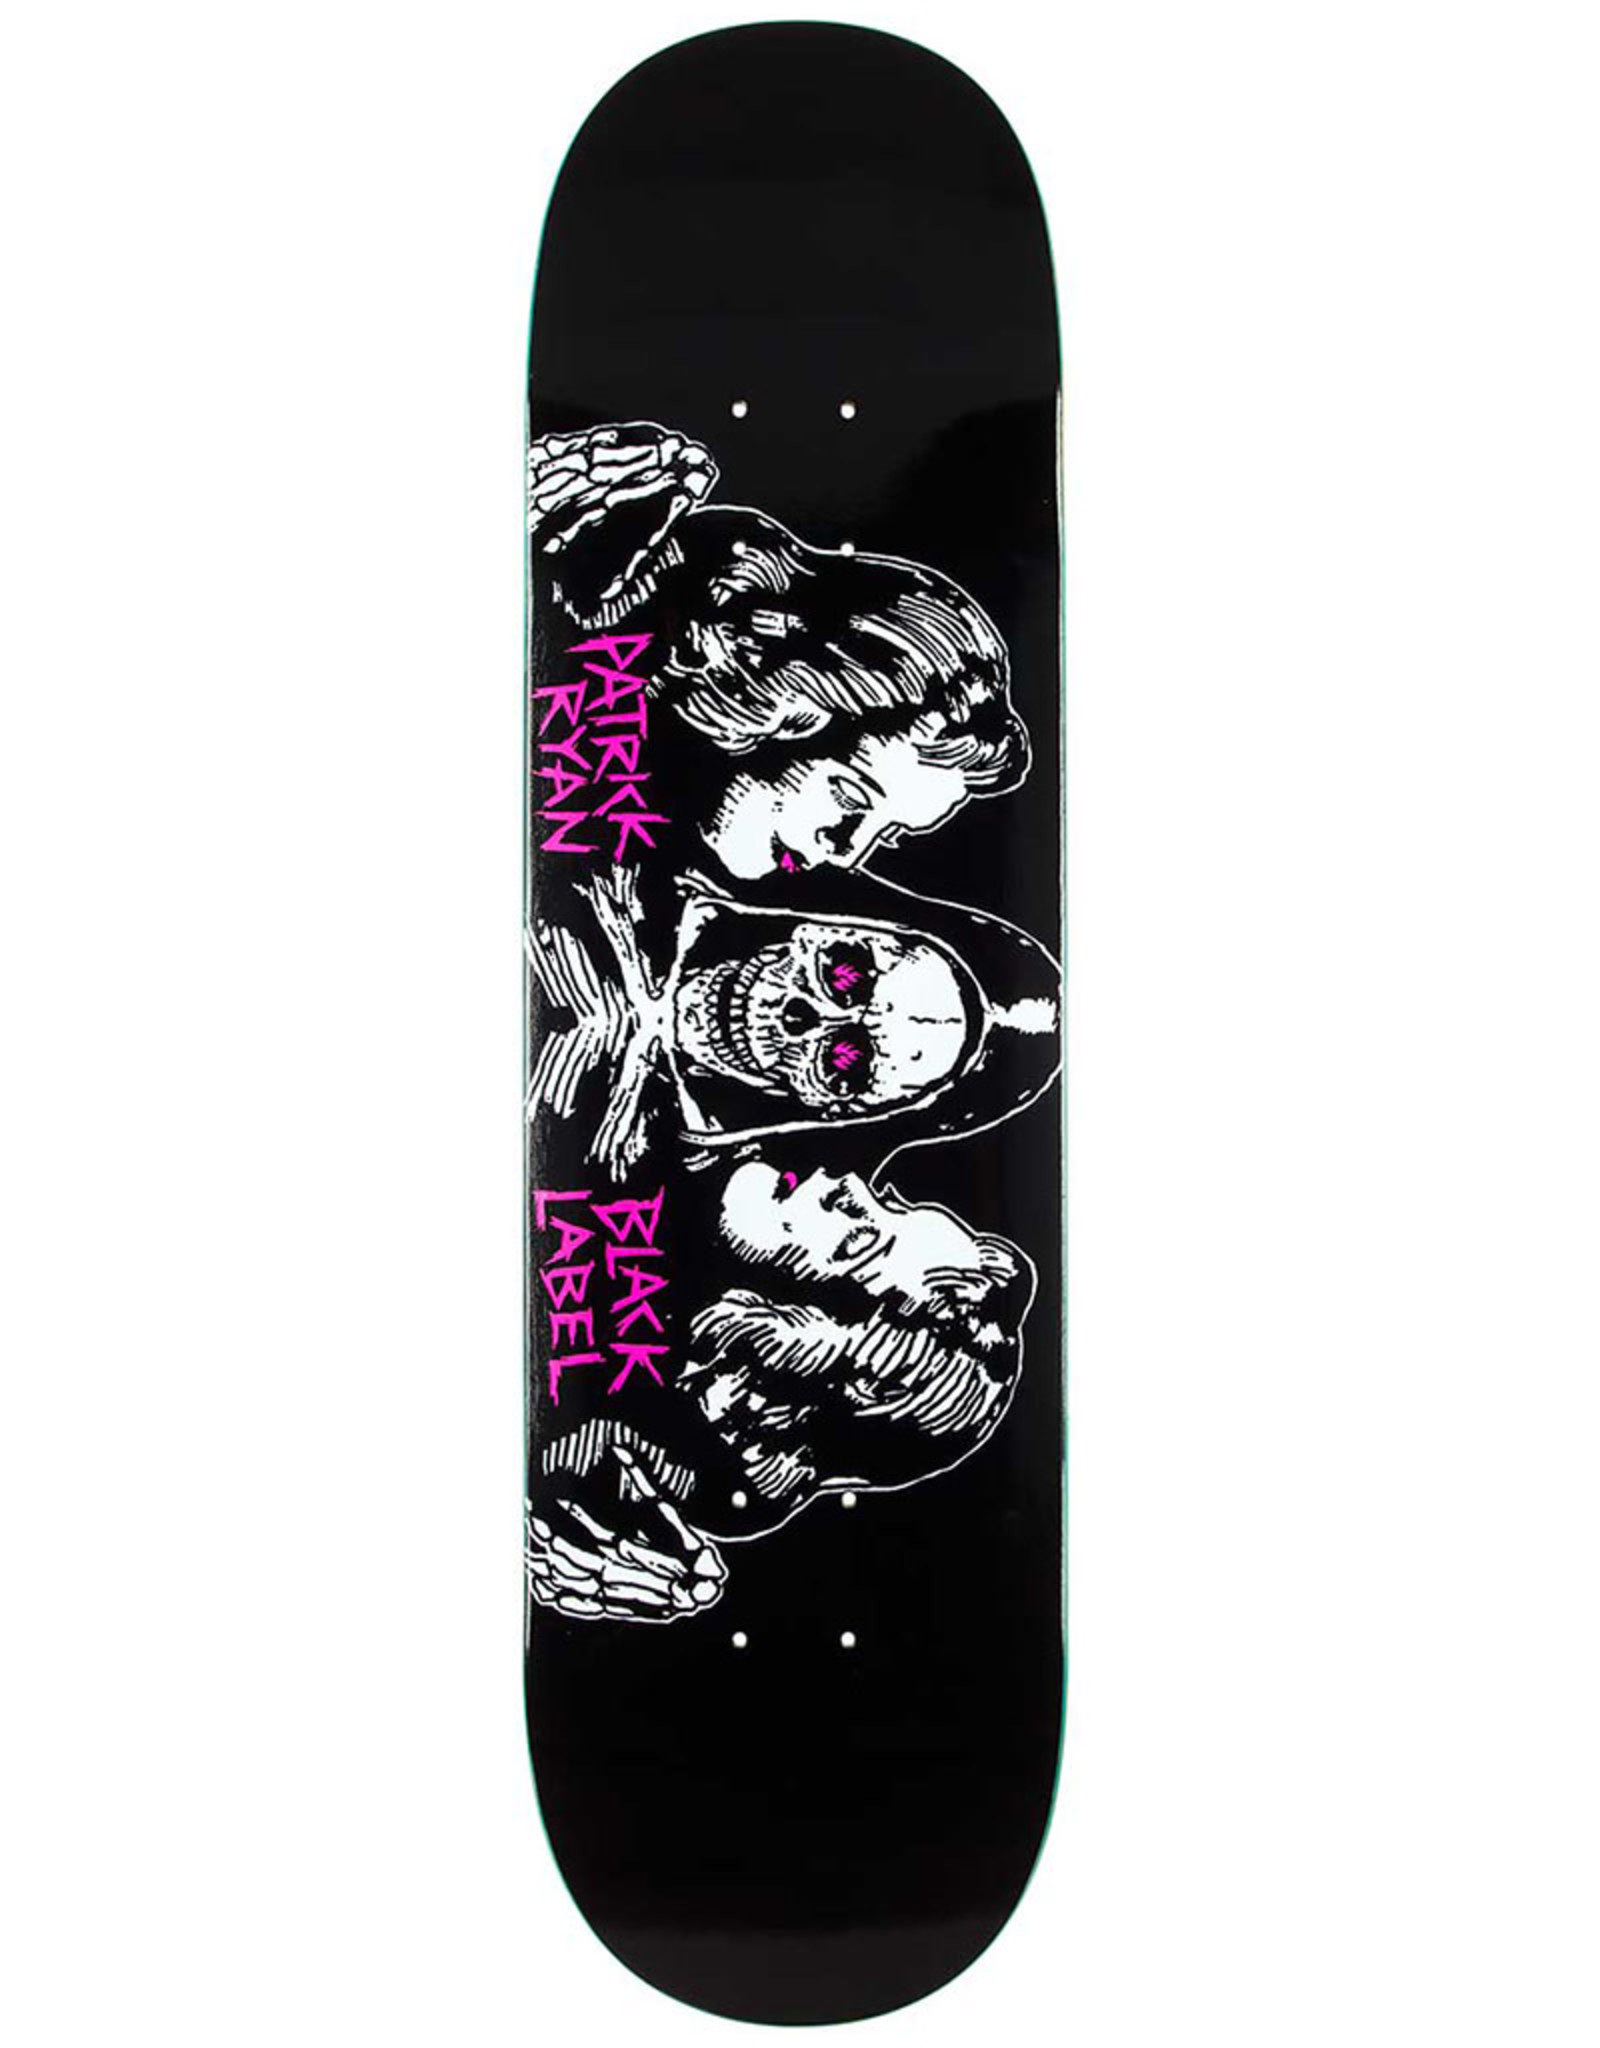 Black Label Black Label Deck Patrick Ryan Better Off Dead Black/White/Red (8.25)